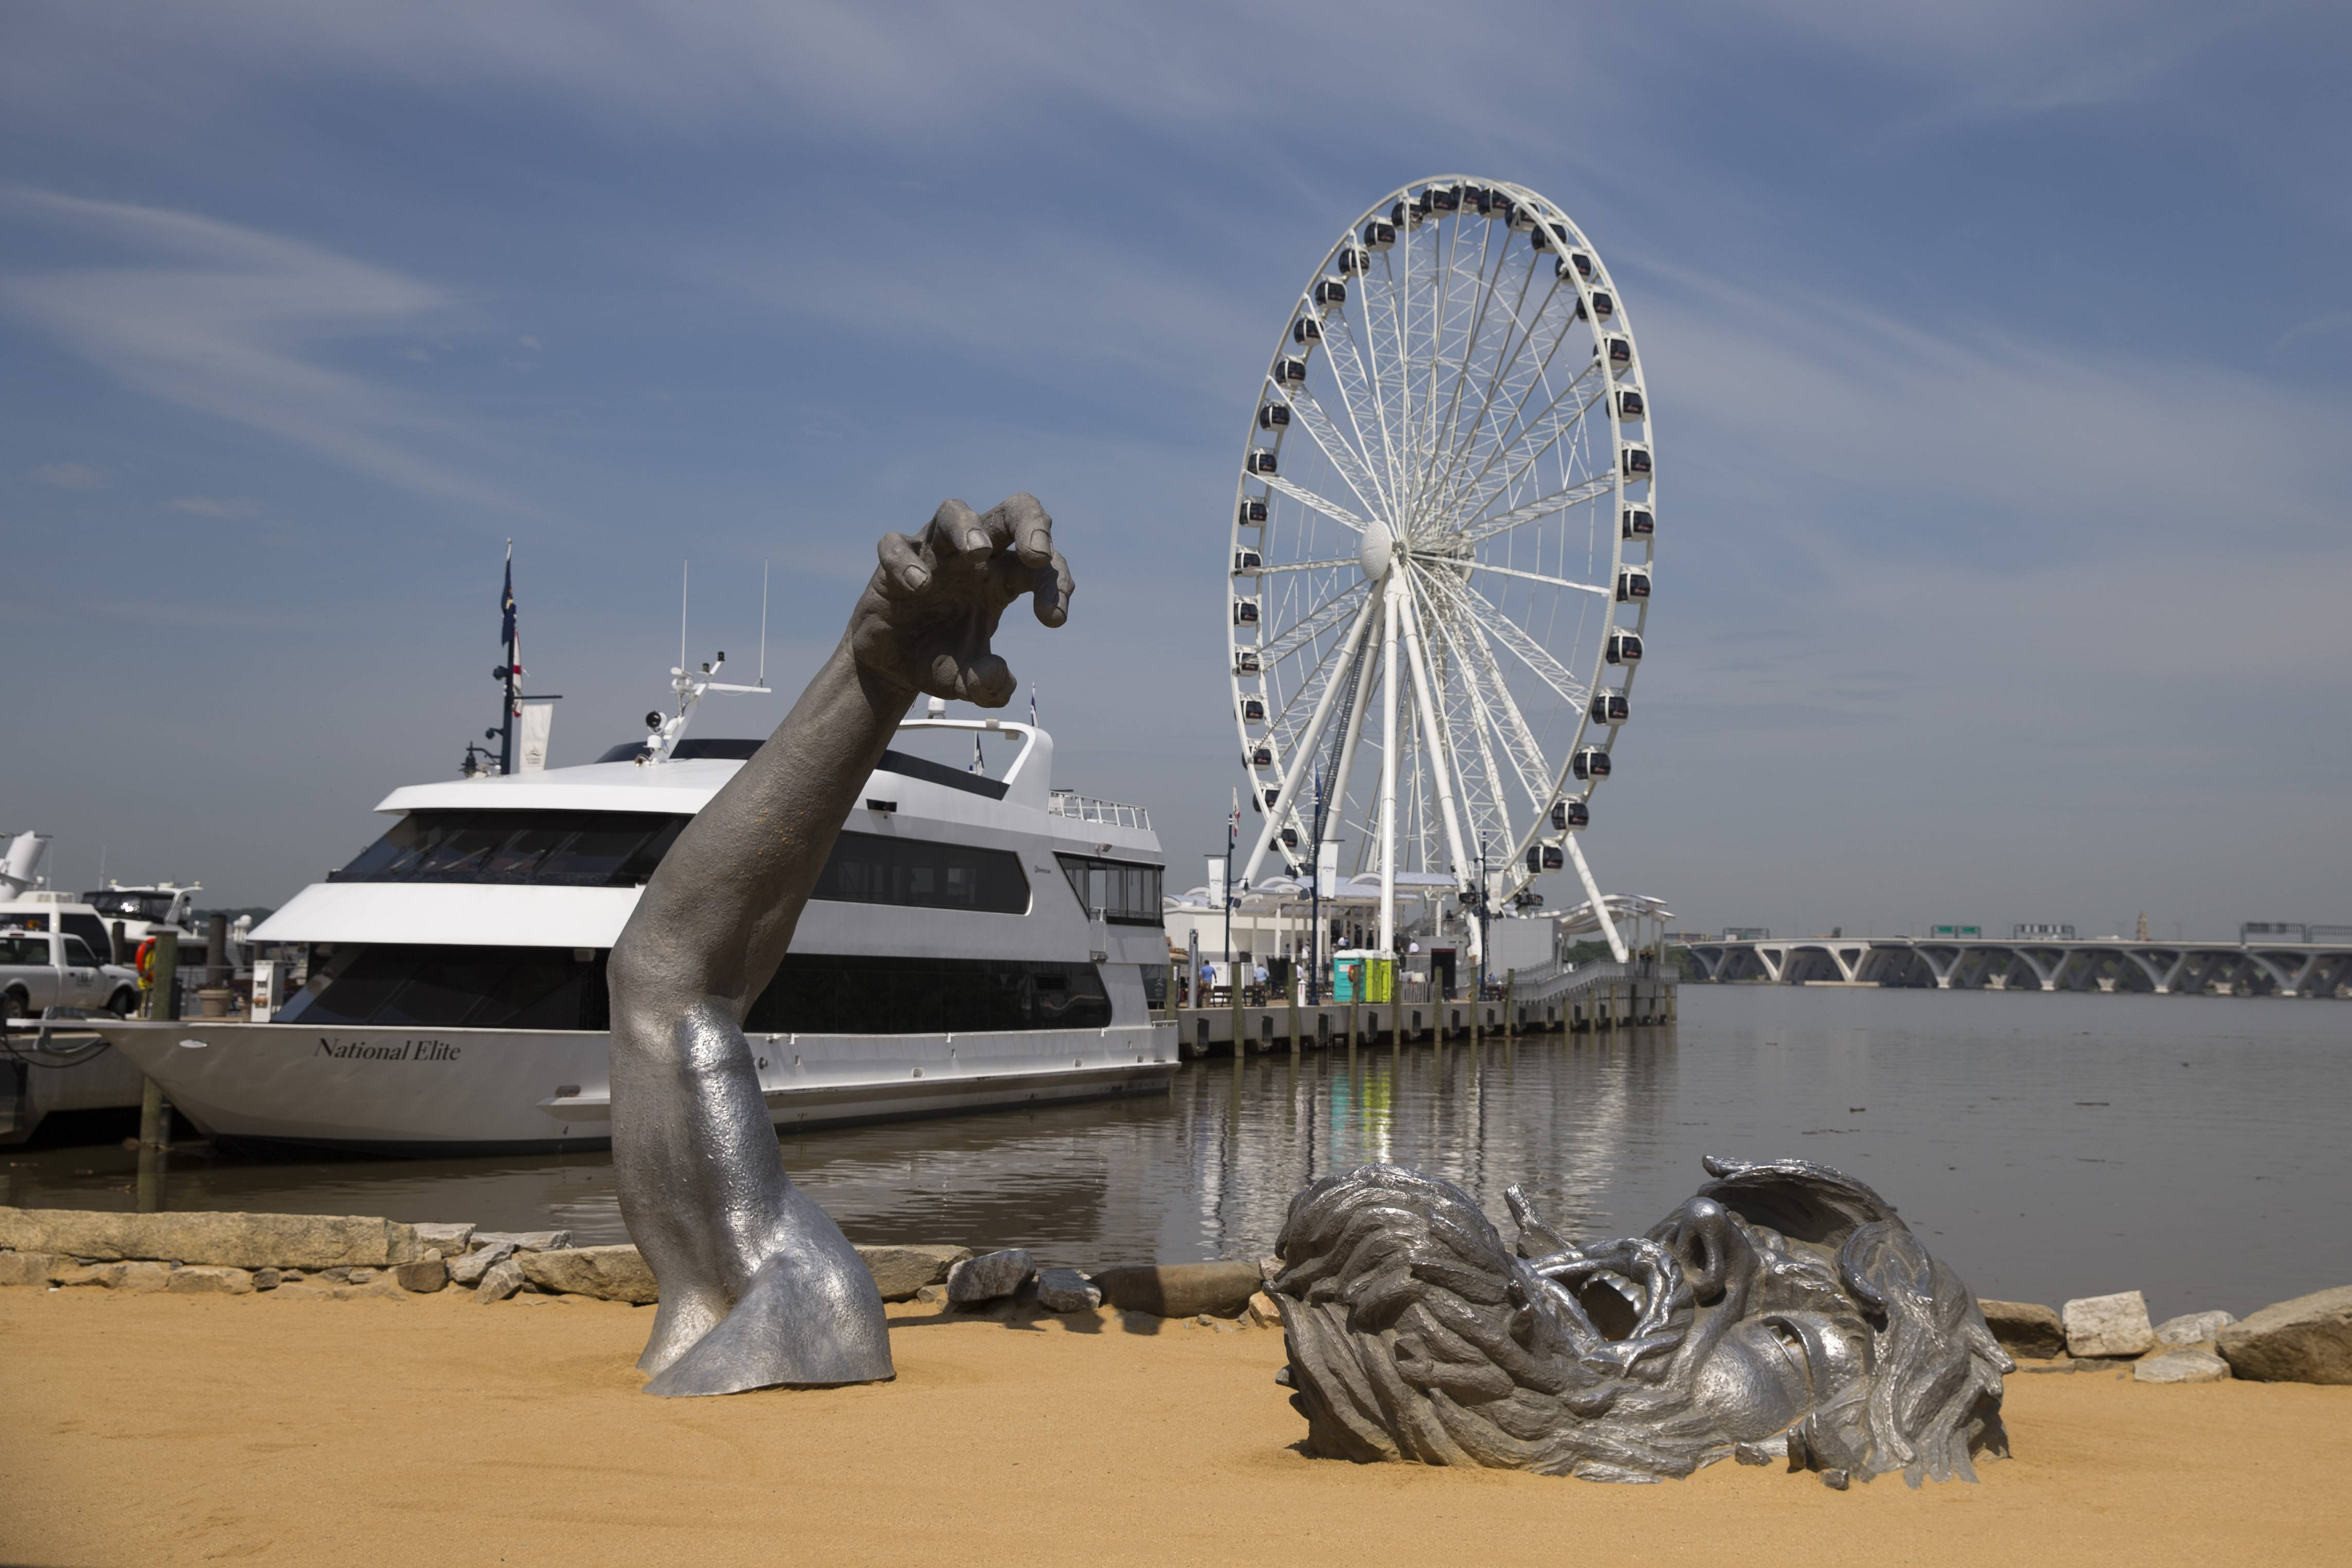 With the new Capital Wheel overlooking the nation's capital, a children's museum, a village of restaurants and hotels and a major casino resort on the horizon, National Harbor in Maryland has quickly become a travel alternative to the marble monuments and museums of nearby Washington.